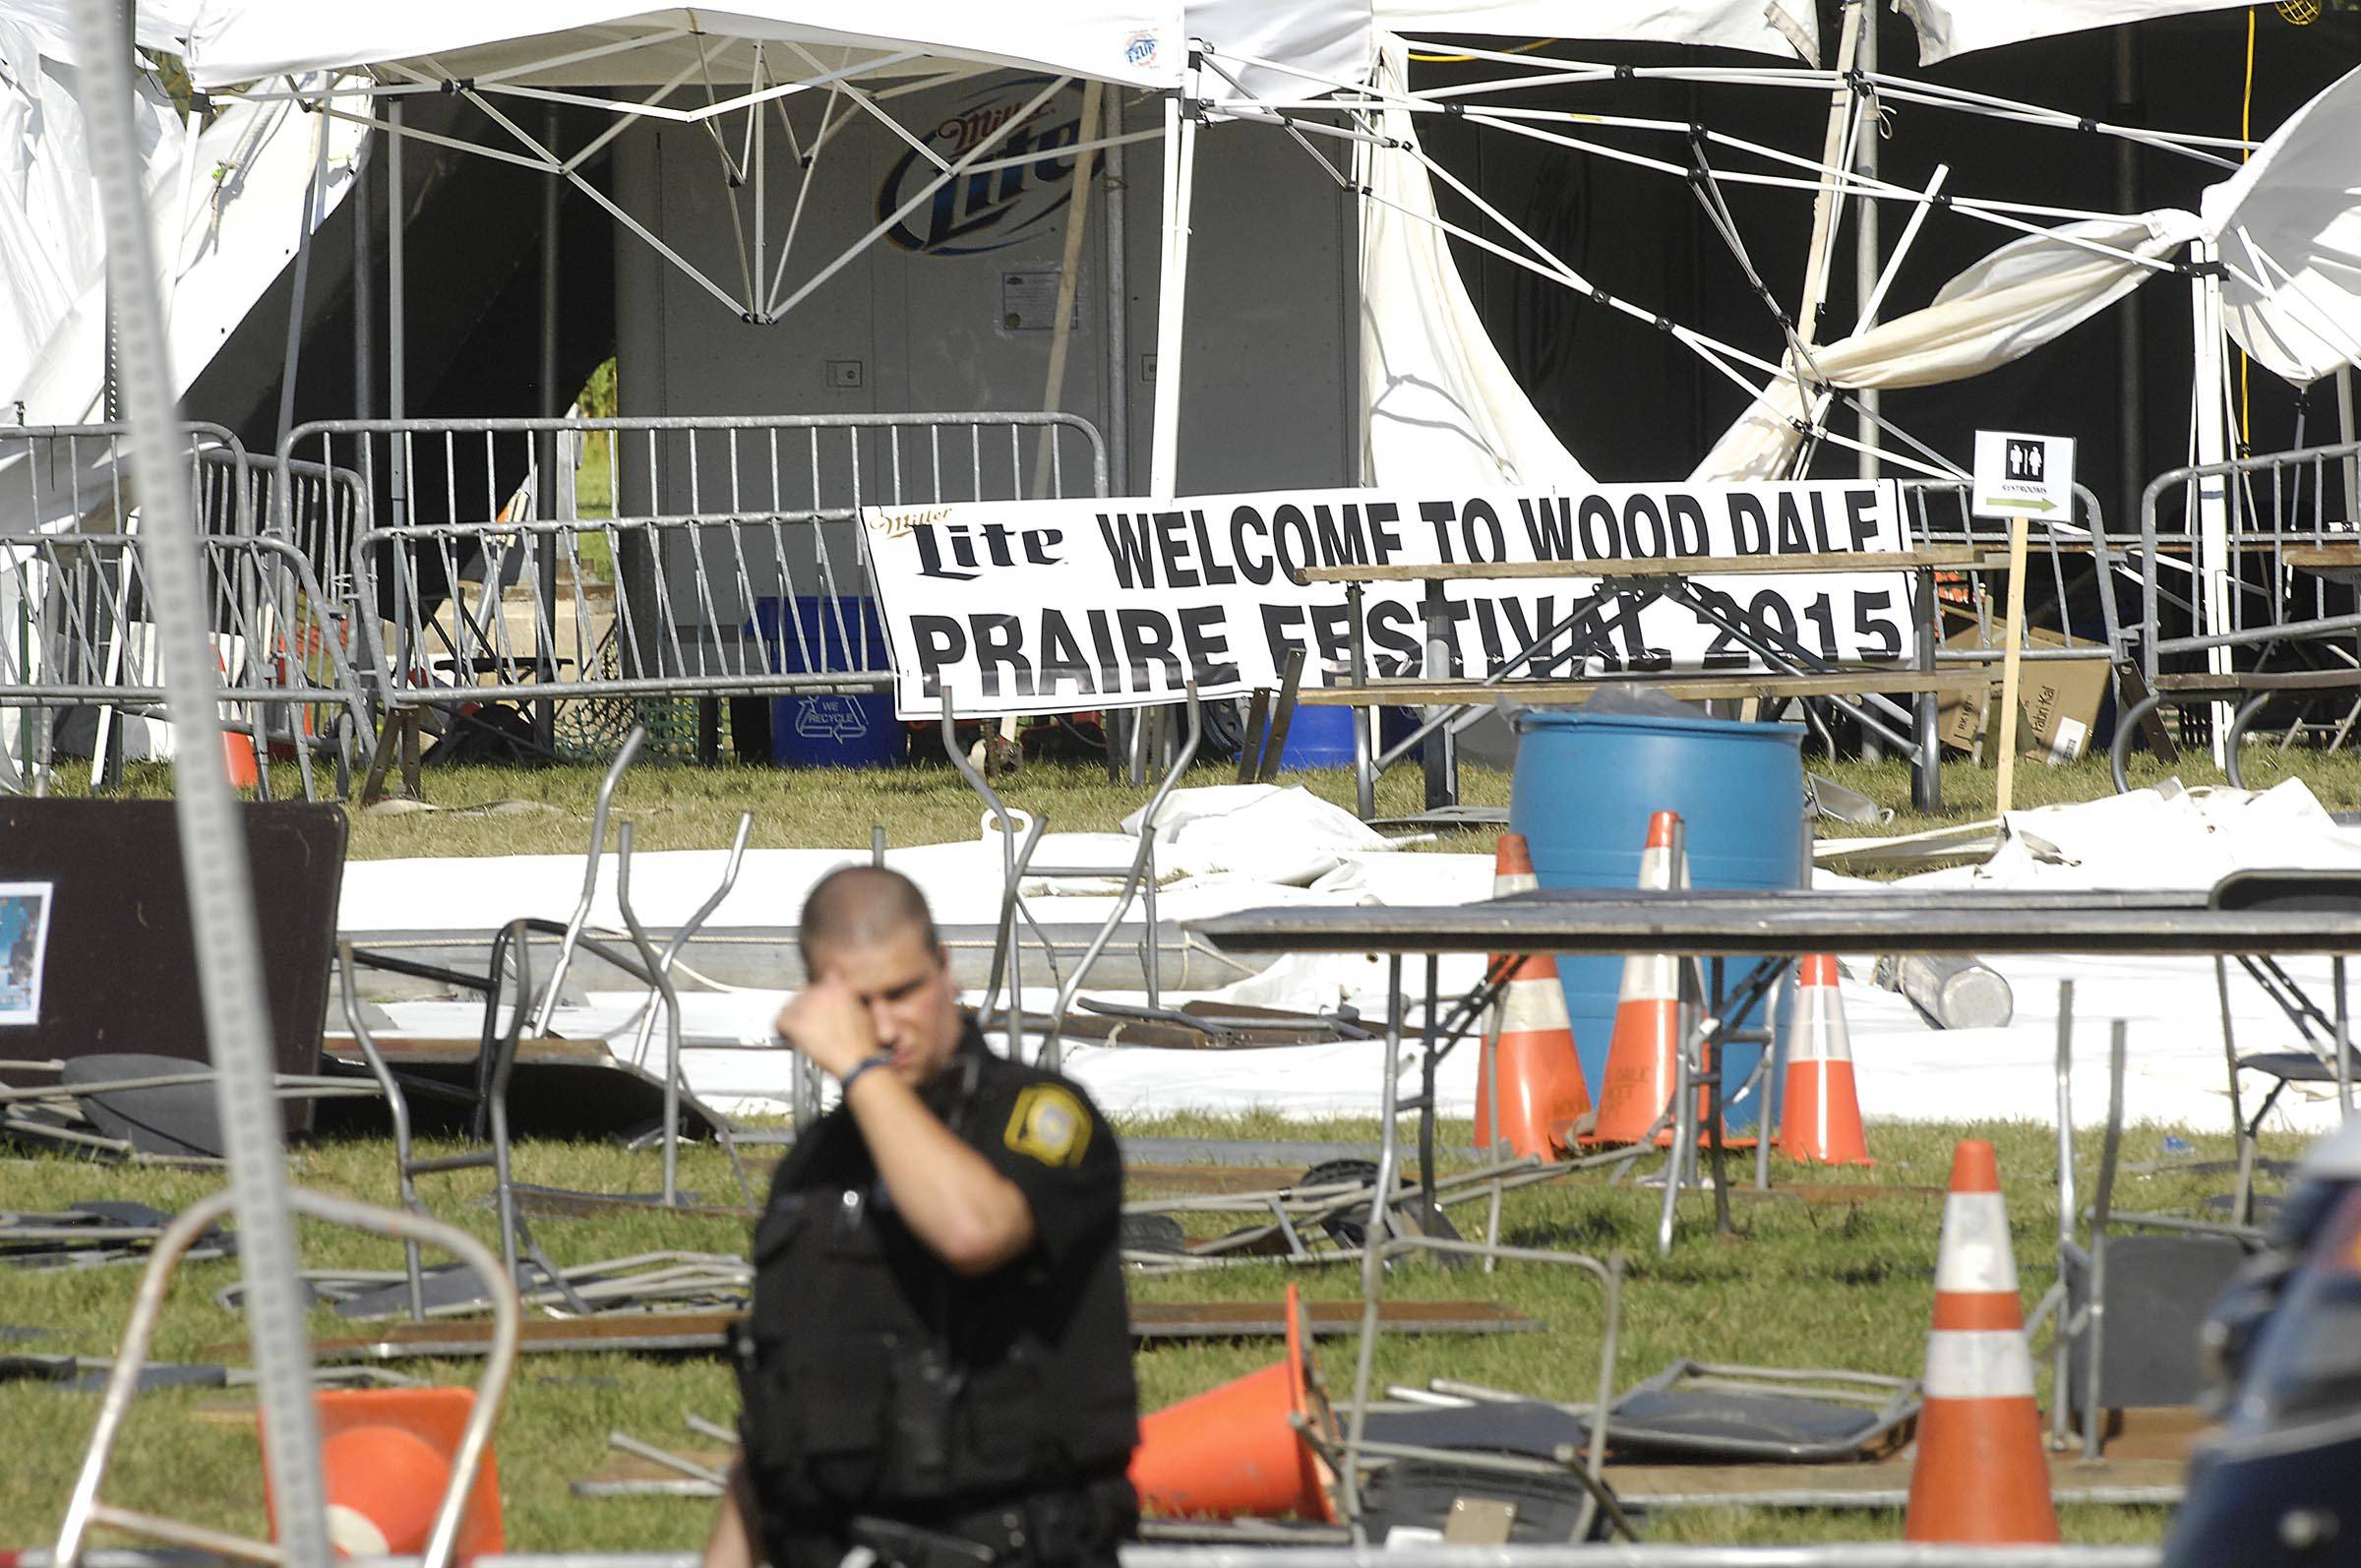 Two people ultimately died as a result of their injuries and 22 more were injured during last summer's Wood Dale Prairie Fest when a strong wind toppled a festival tent.